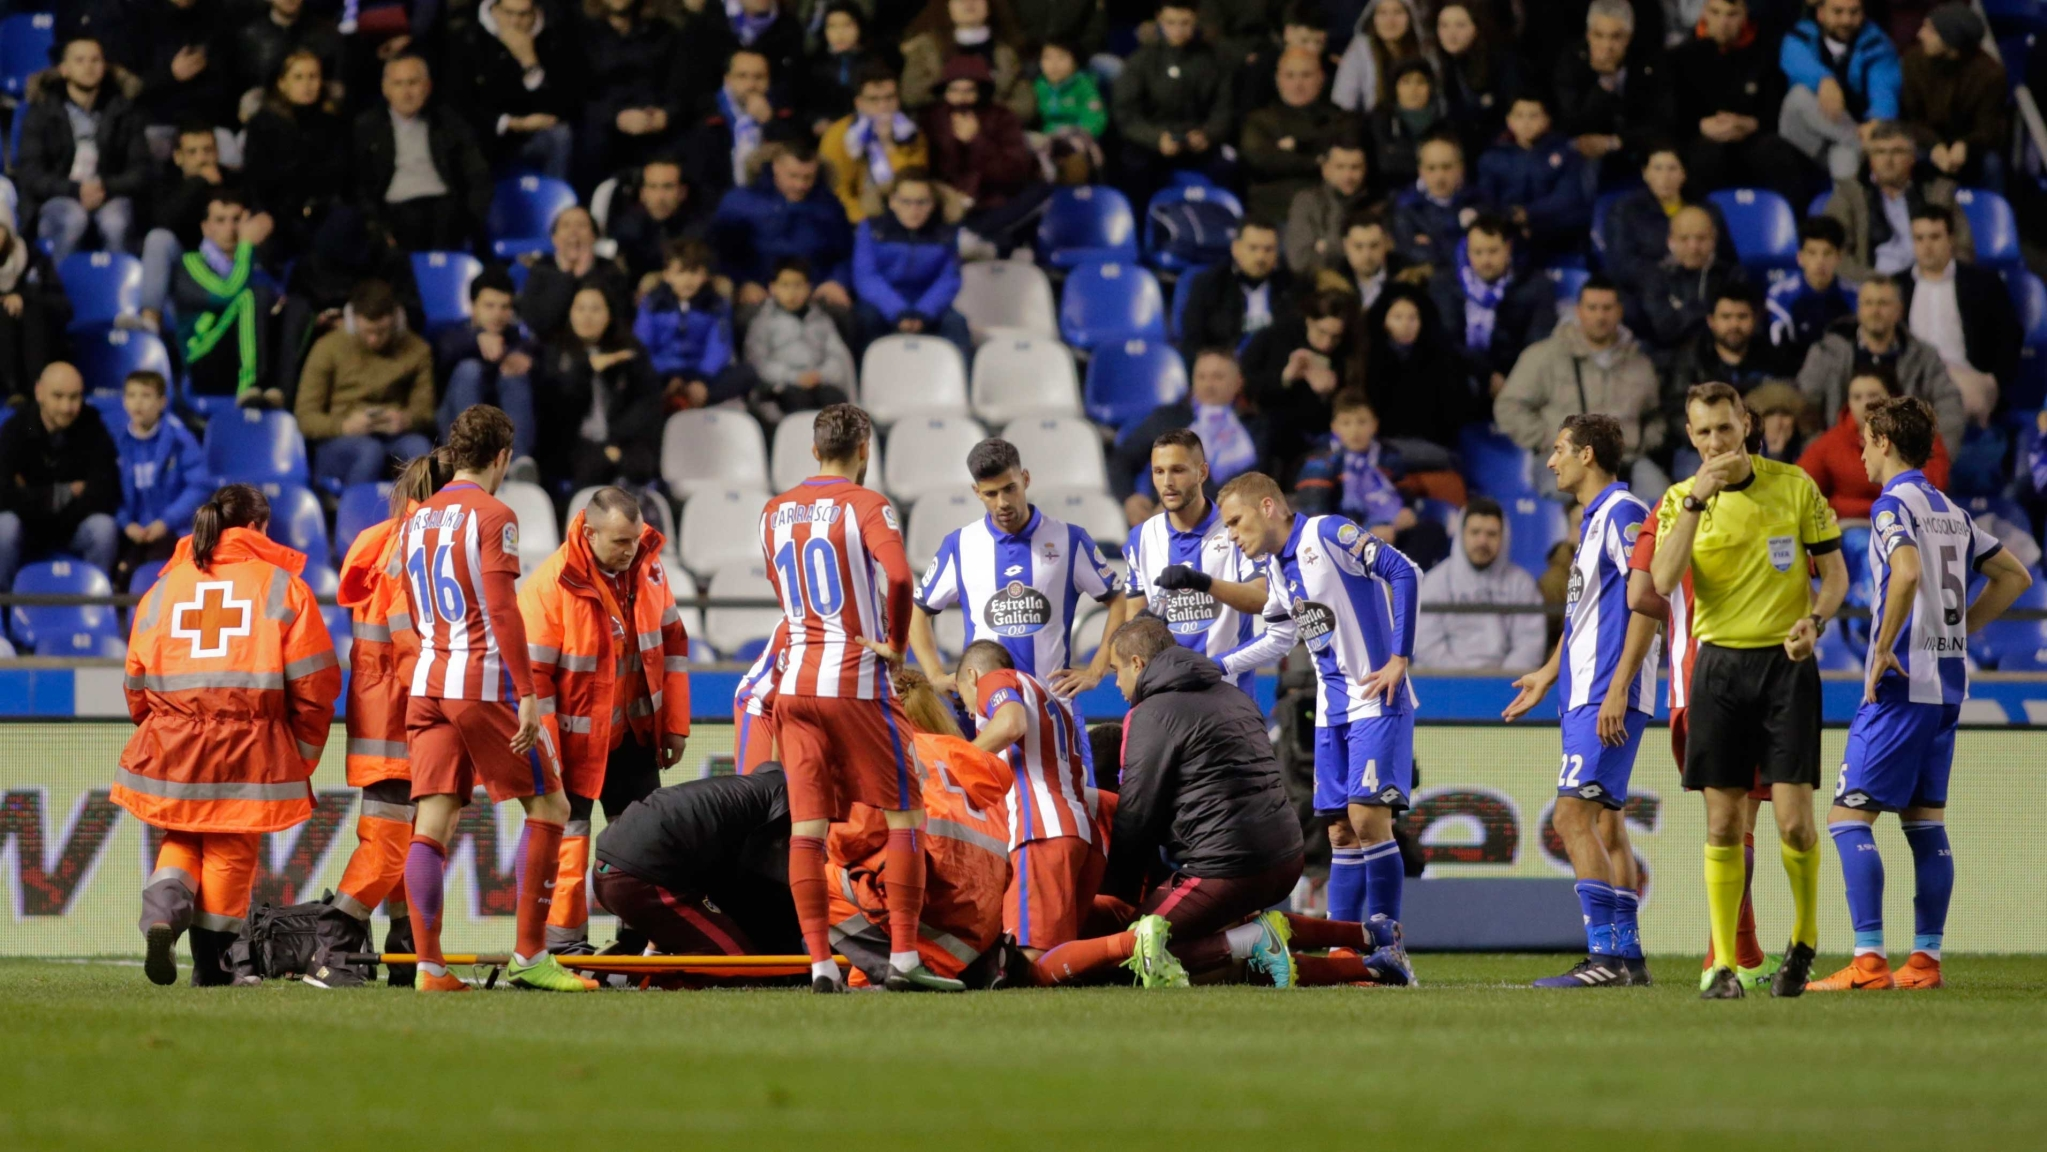 fernando torres collapses after head injury during